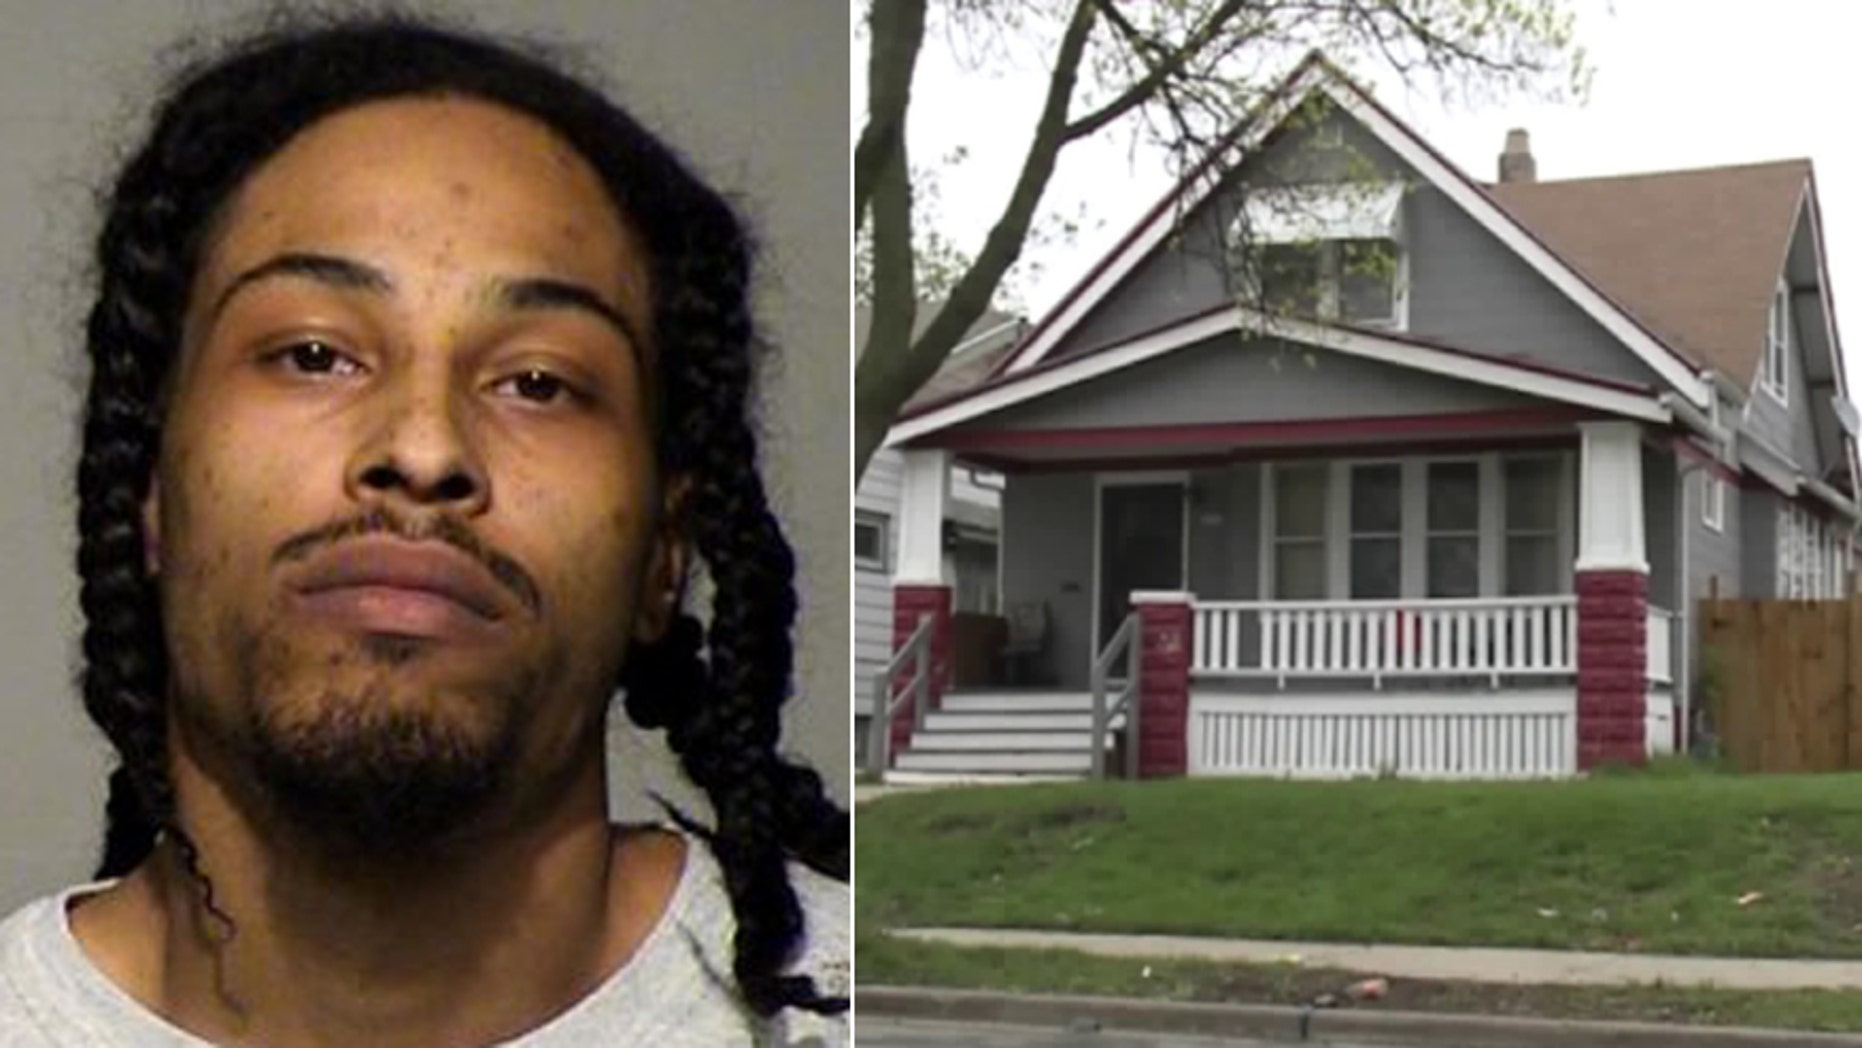 Dennis Torres of Milwaukee has admitted to beating his 14-month-old son, police say.